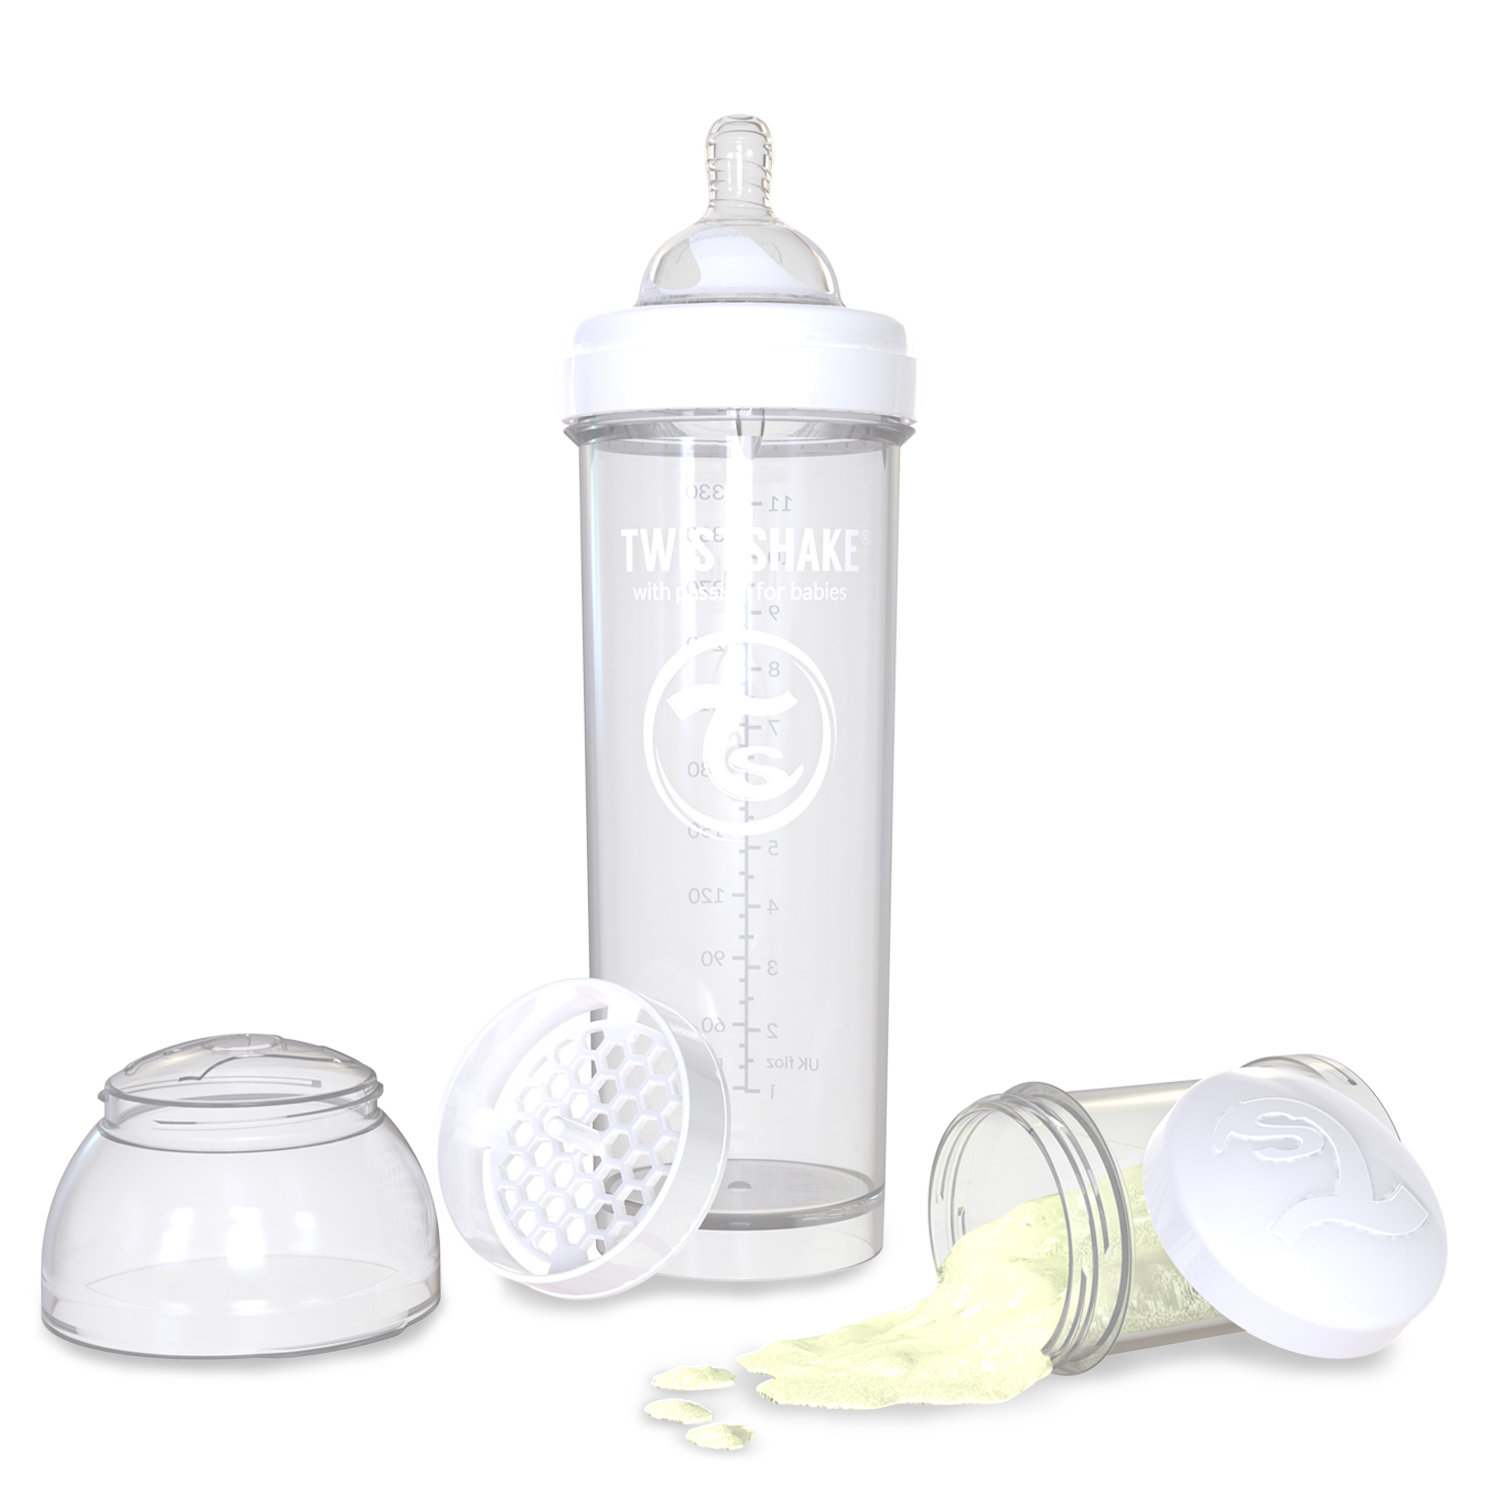 Twistshake Anti-Colic Baby Bottle & Accessories 330ml 11oz White Diamond by Twistshake